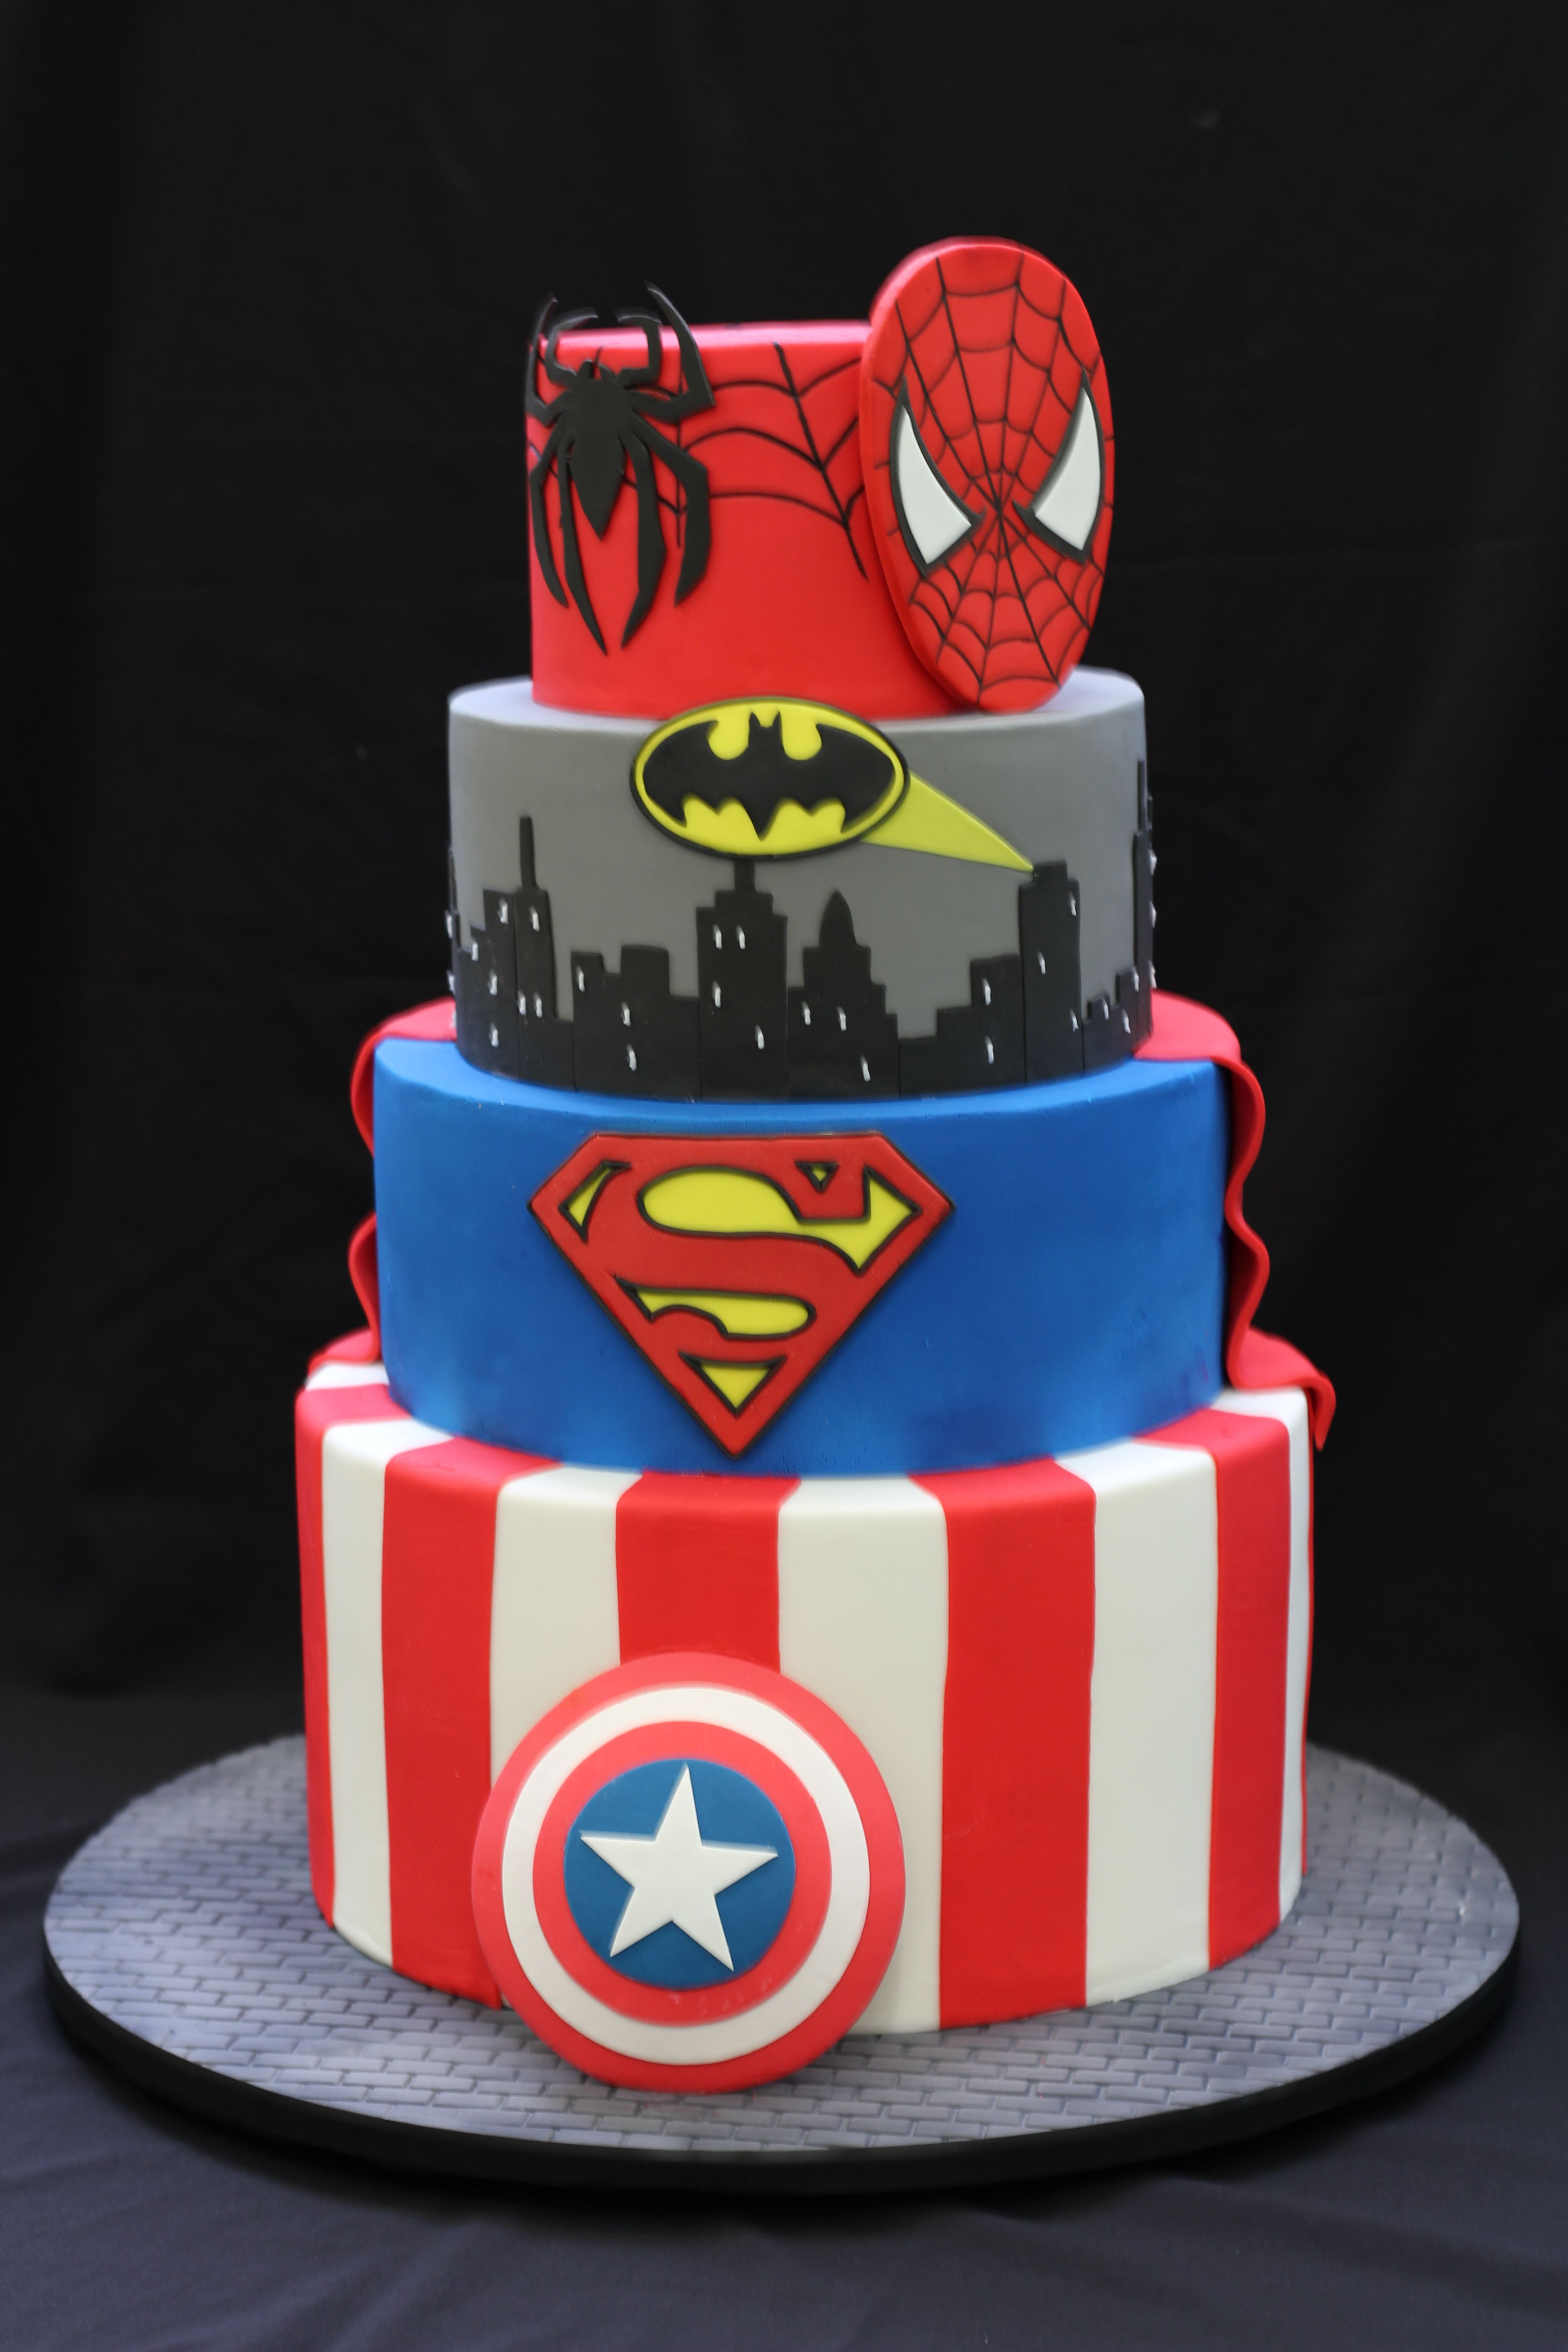 Avengers #1 | Avengers birthday cakes, Superhero birthday ...